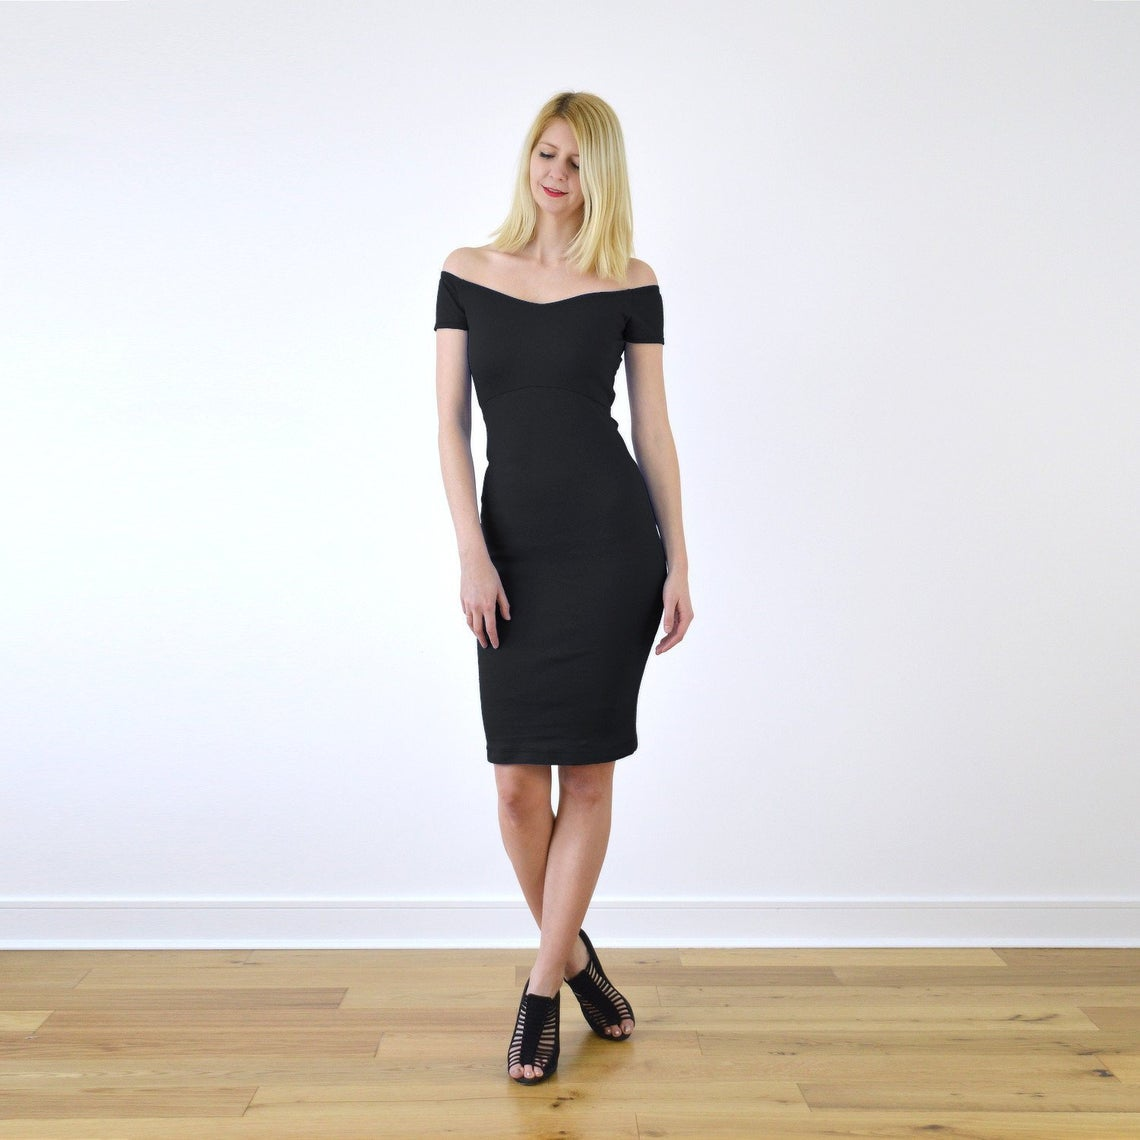 BARDOT | Sexy Off Shoulder Little Black Pencil Dress with Scoop Back. Wide Neck Christmas Party Special Occasion Jersey Bandage Dress